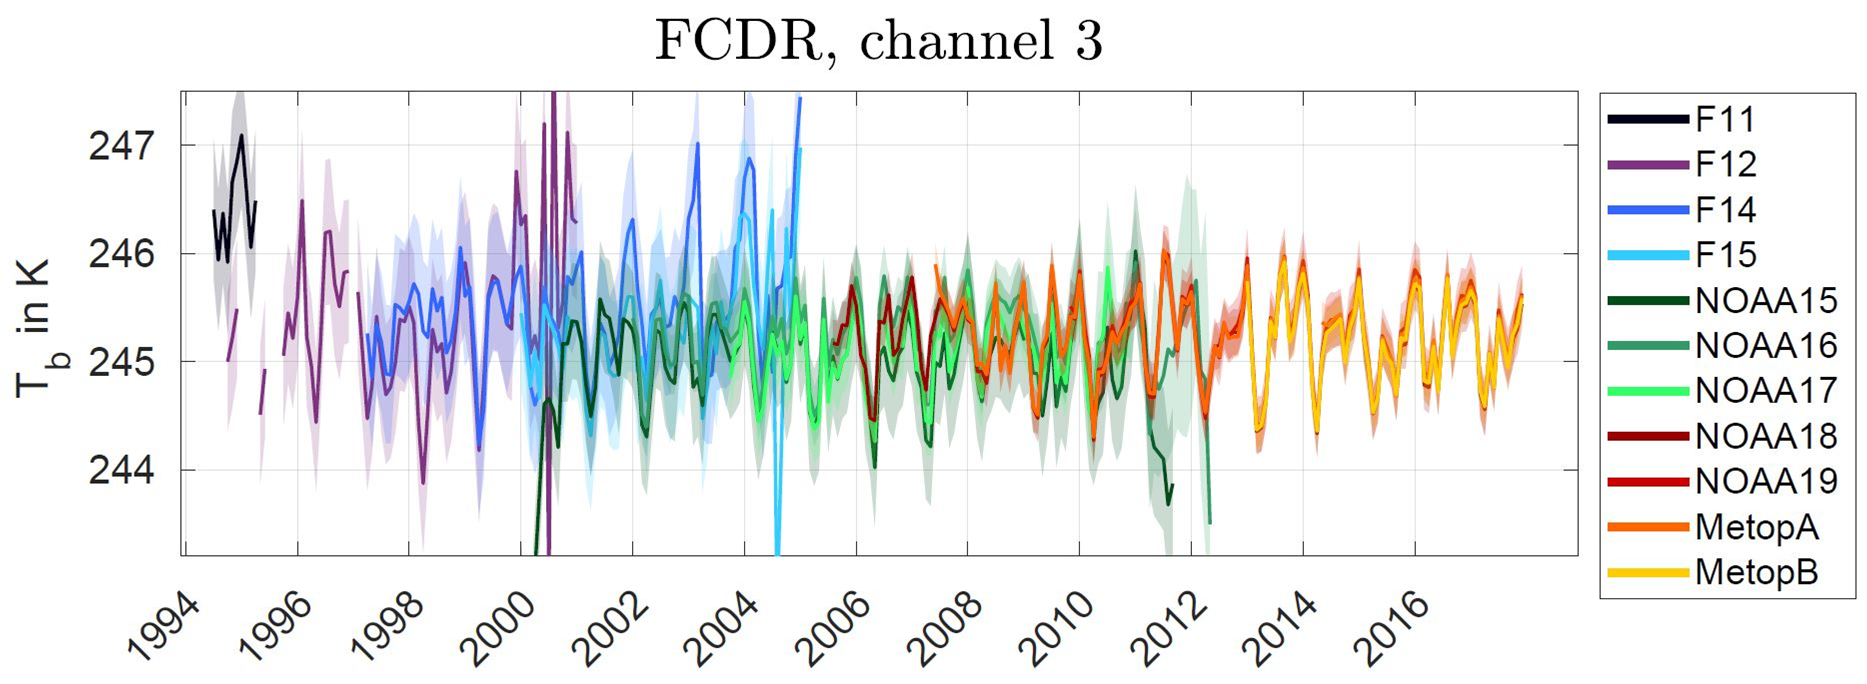 Time series of brightness temperature of channel 3 (183.31 +/- 1.00 GHz) for all Microwave Humidity Sounder instruments considered in the FCDRs. Credit: Hans et al., 2019